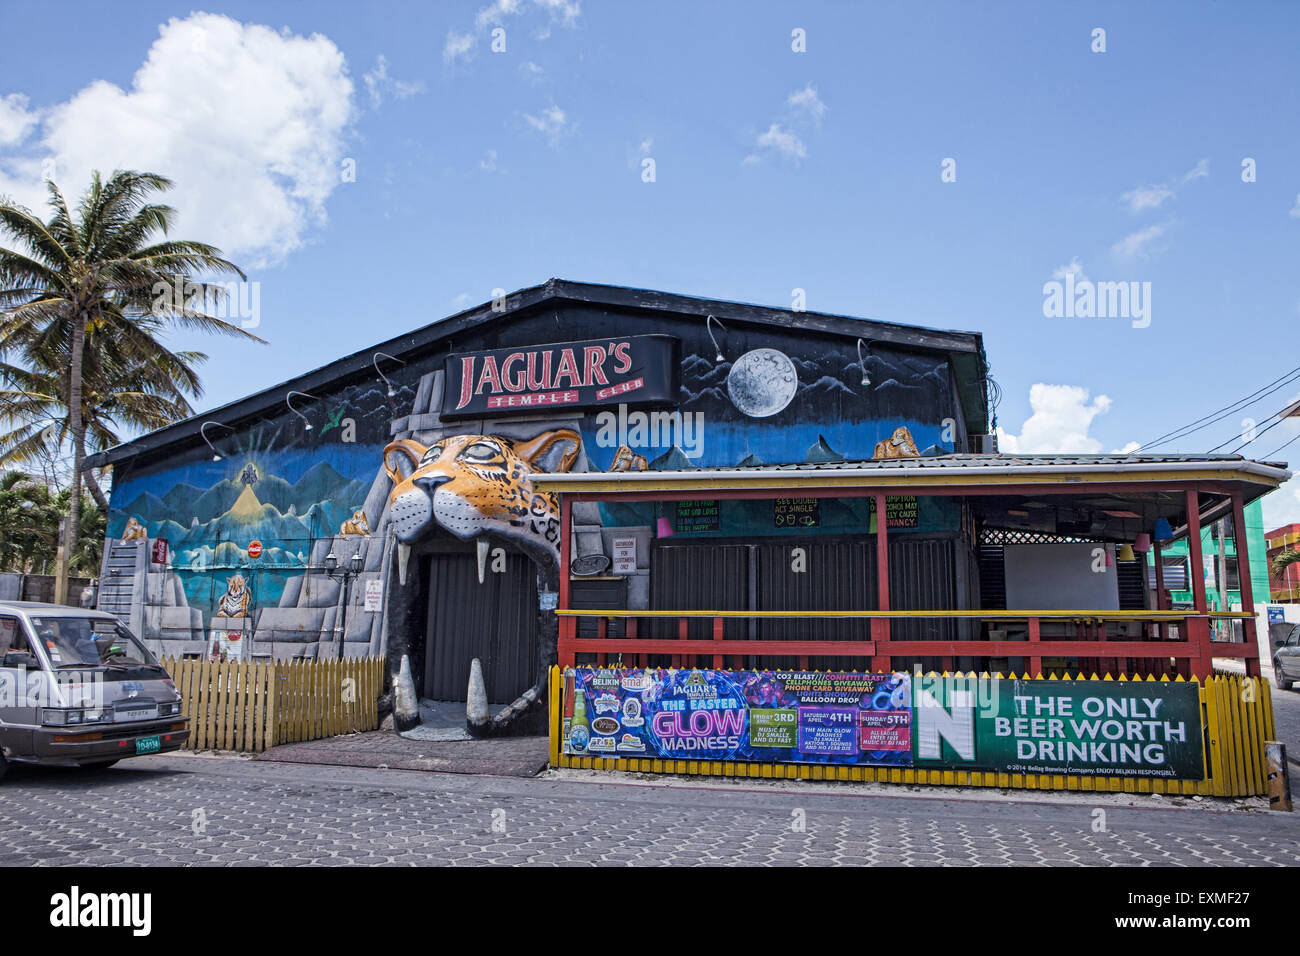 Jaguar's Temple Club in San Pedro, Ambergris Caye, Belize, Central America. - Stock Image